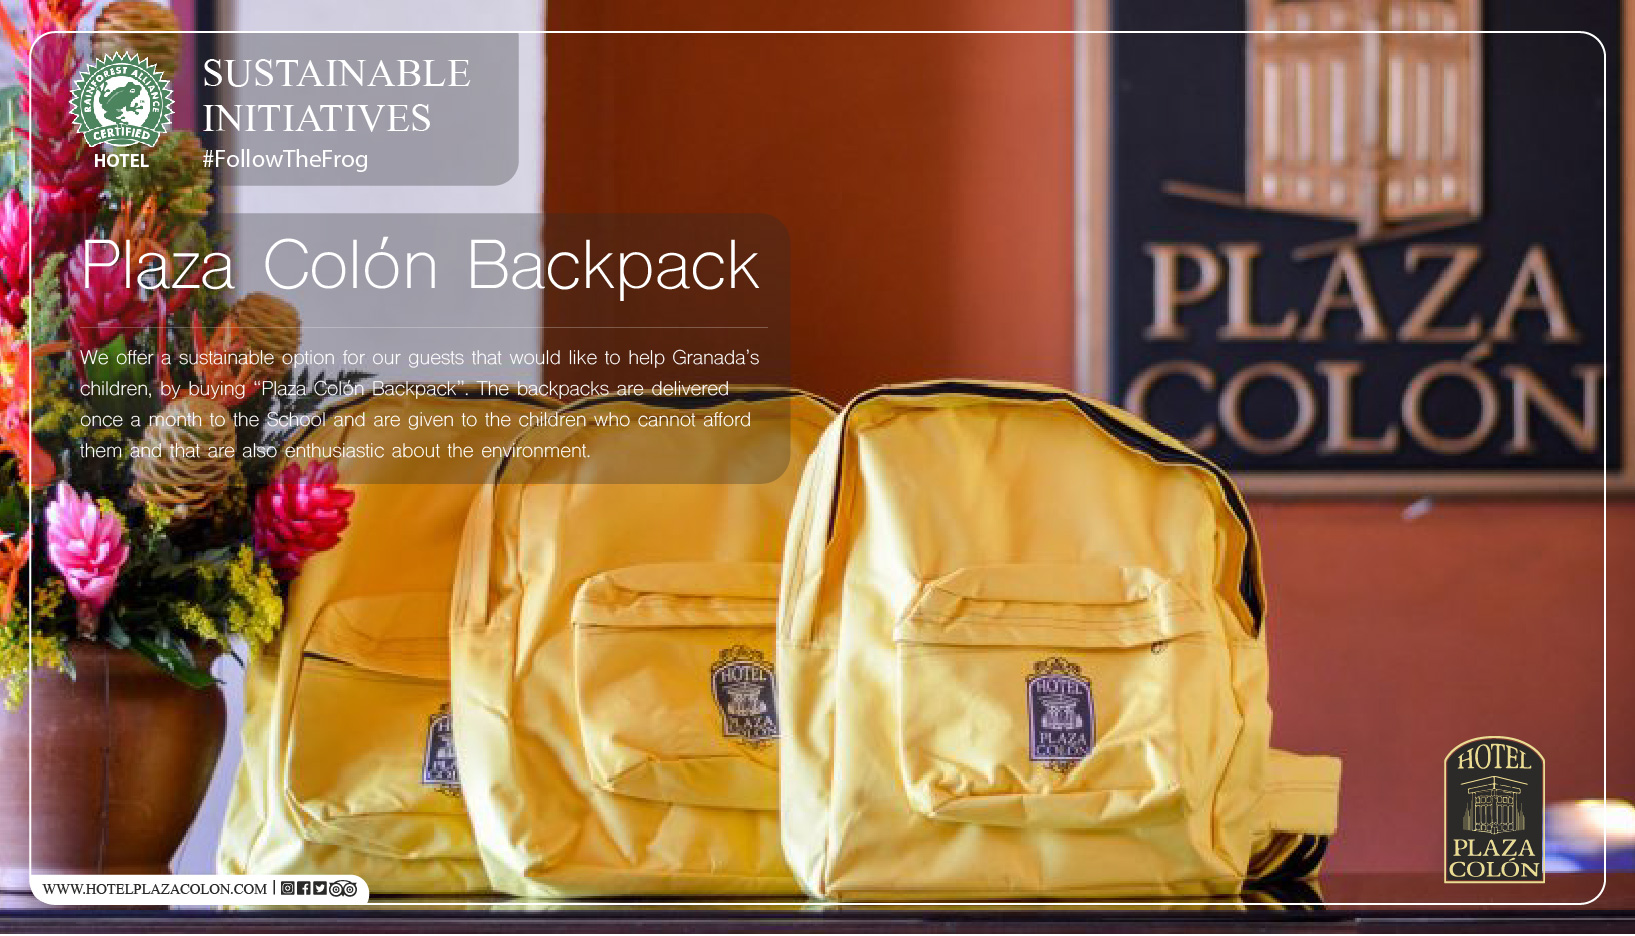 Sustainable hotel school backpack